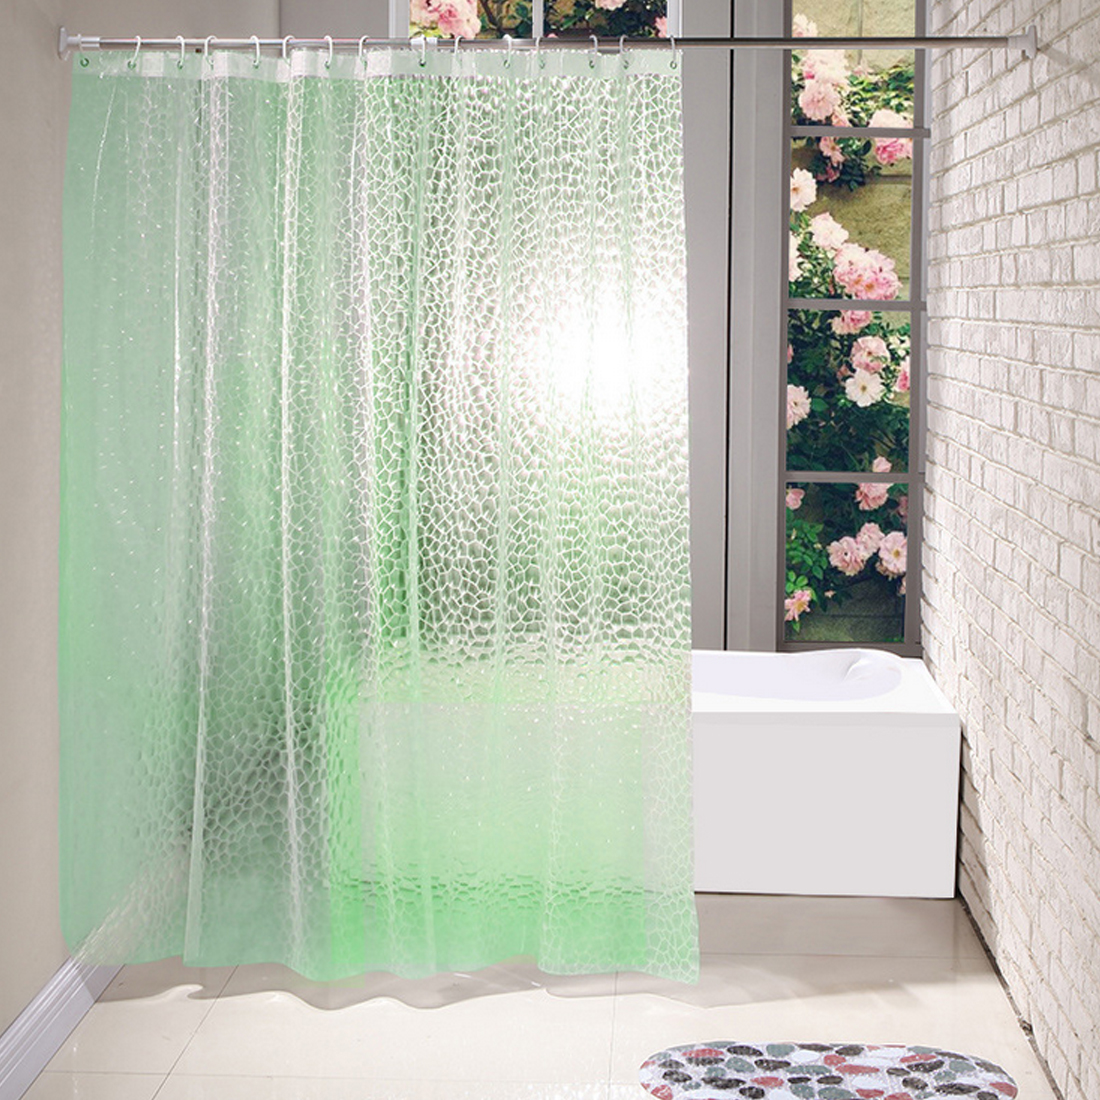 waterproof shower curtain translucent 3d thickened 1.8*1